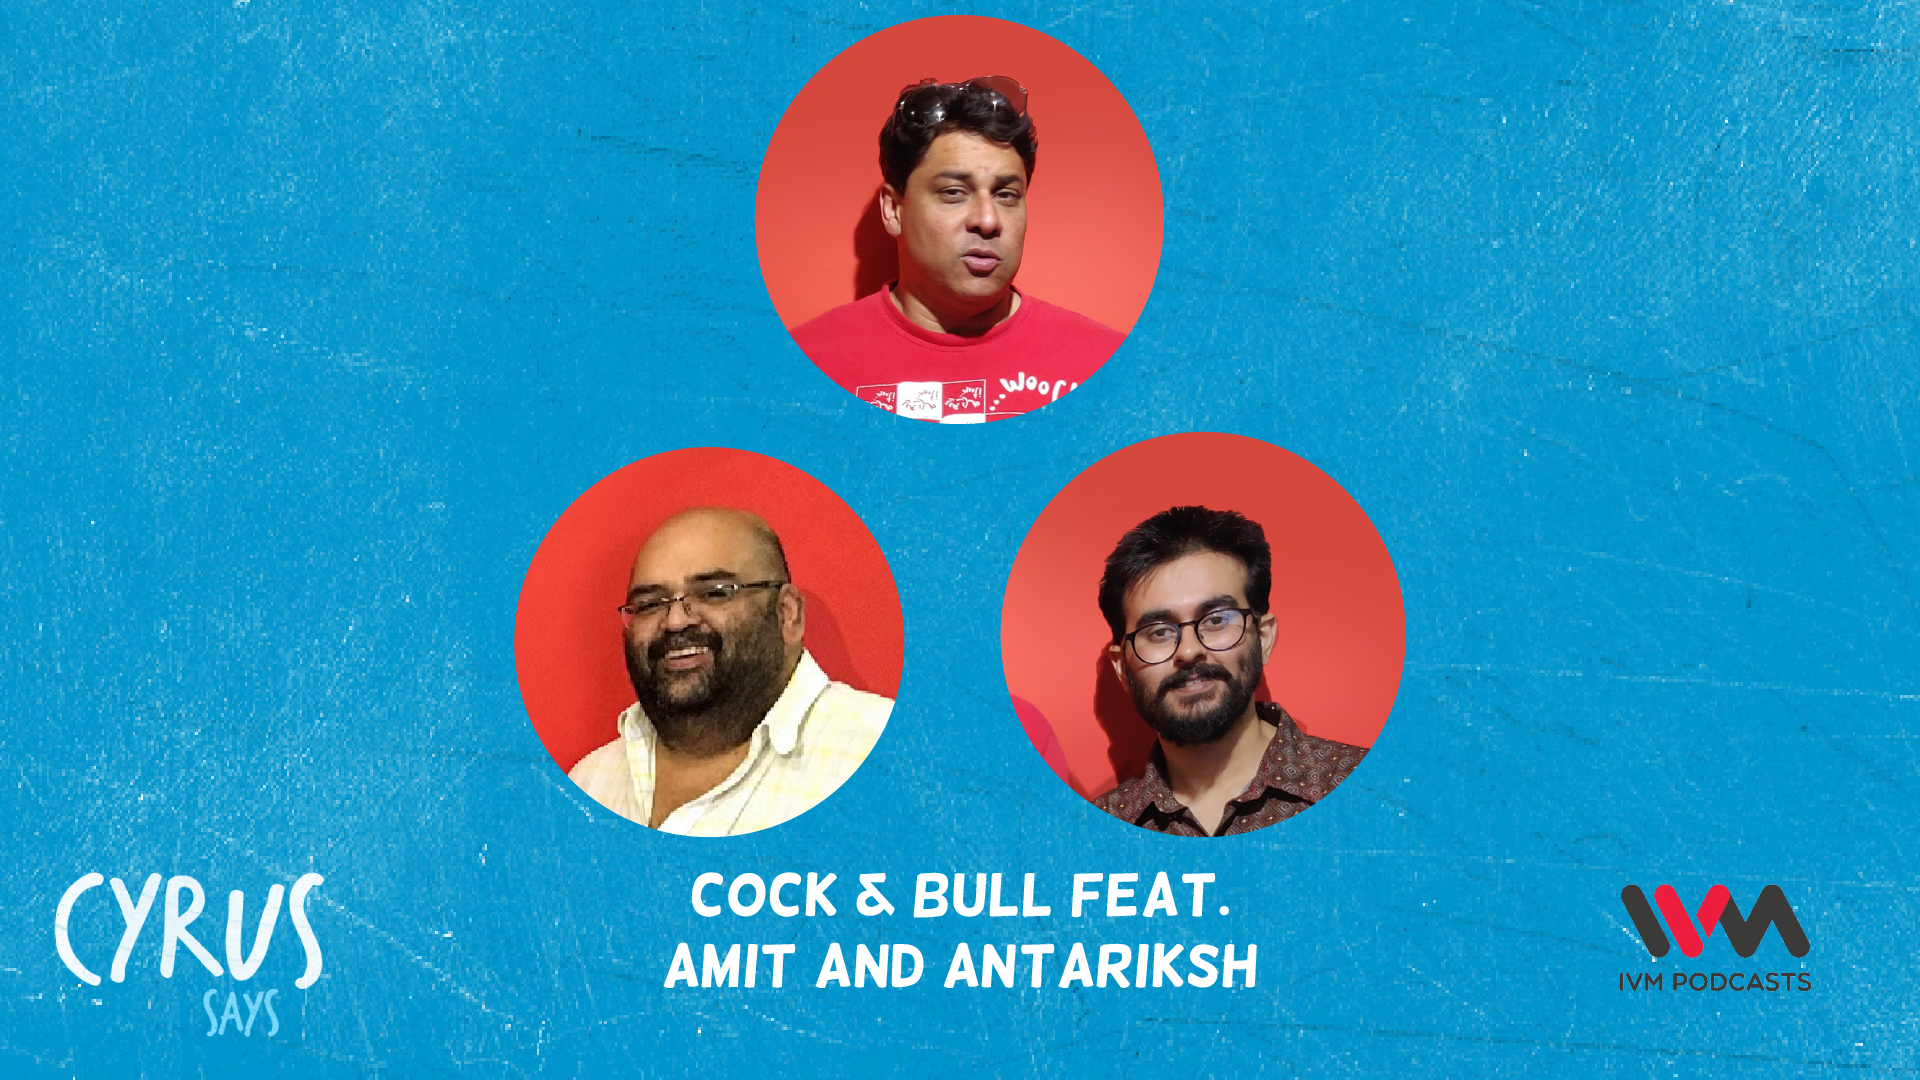 Ep. 656: Cock & Bull feat. Amit and Antariksh